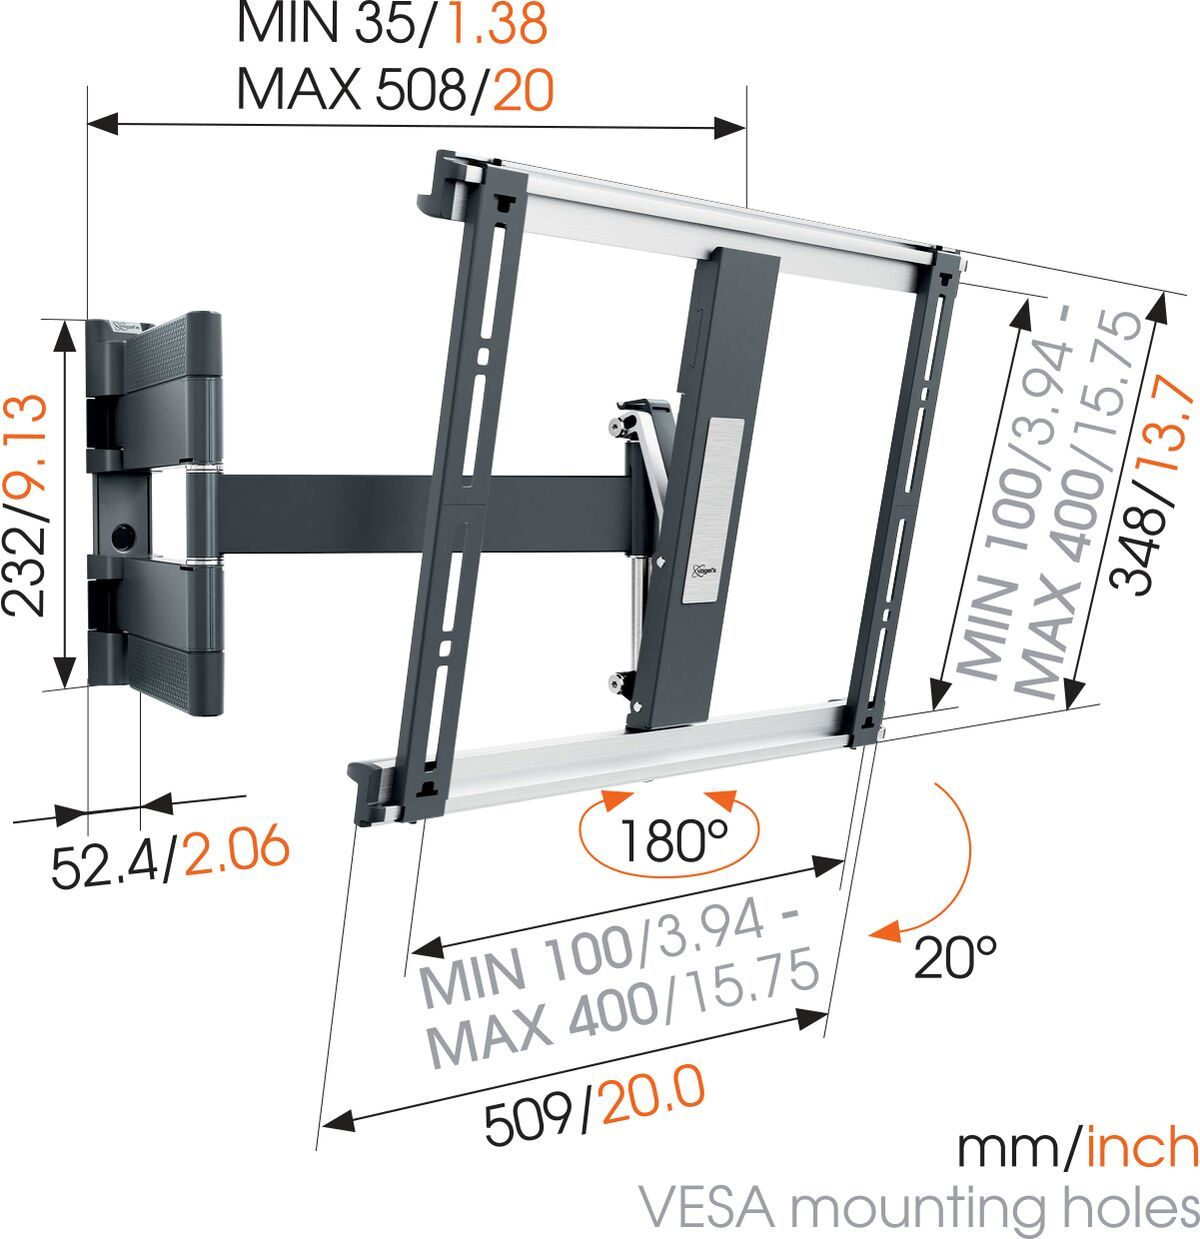 Vogel's THIN 445 ExtraThin Full-Motion TV Wall Mount (black) - Suitable for 26 up to 55 inch TVs - Full motion (up to 180°) - Tilt up to 20° - Dimensions